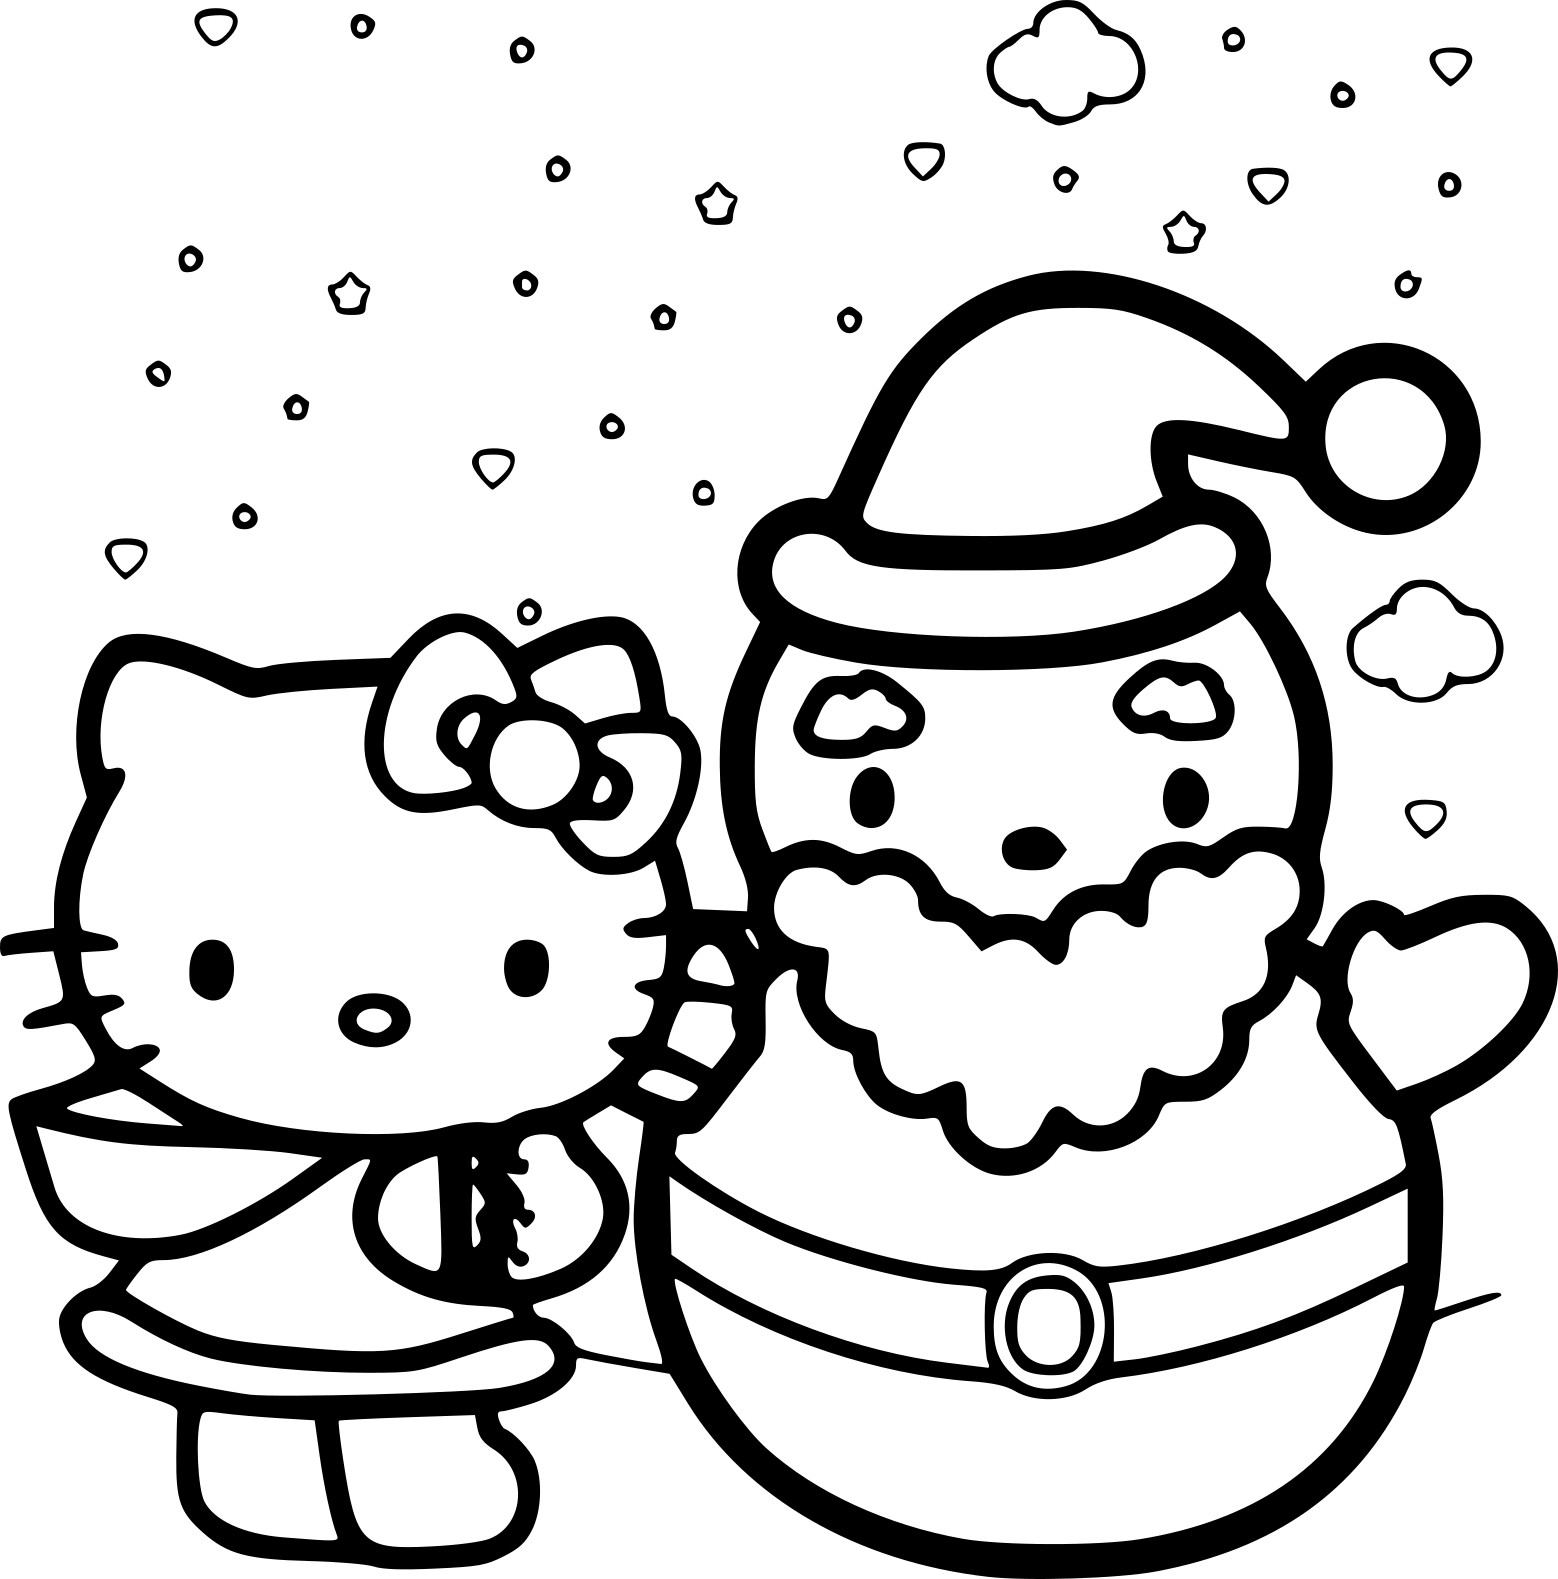 Coloriage de hello kitty princesse - Coloriage hello kitty ...